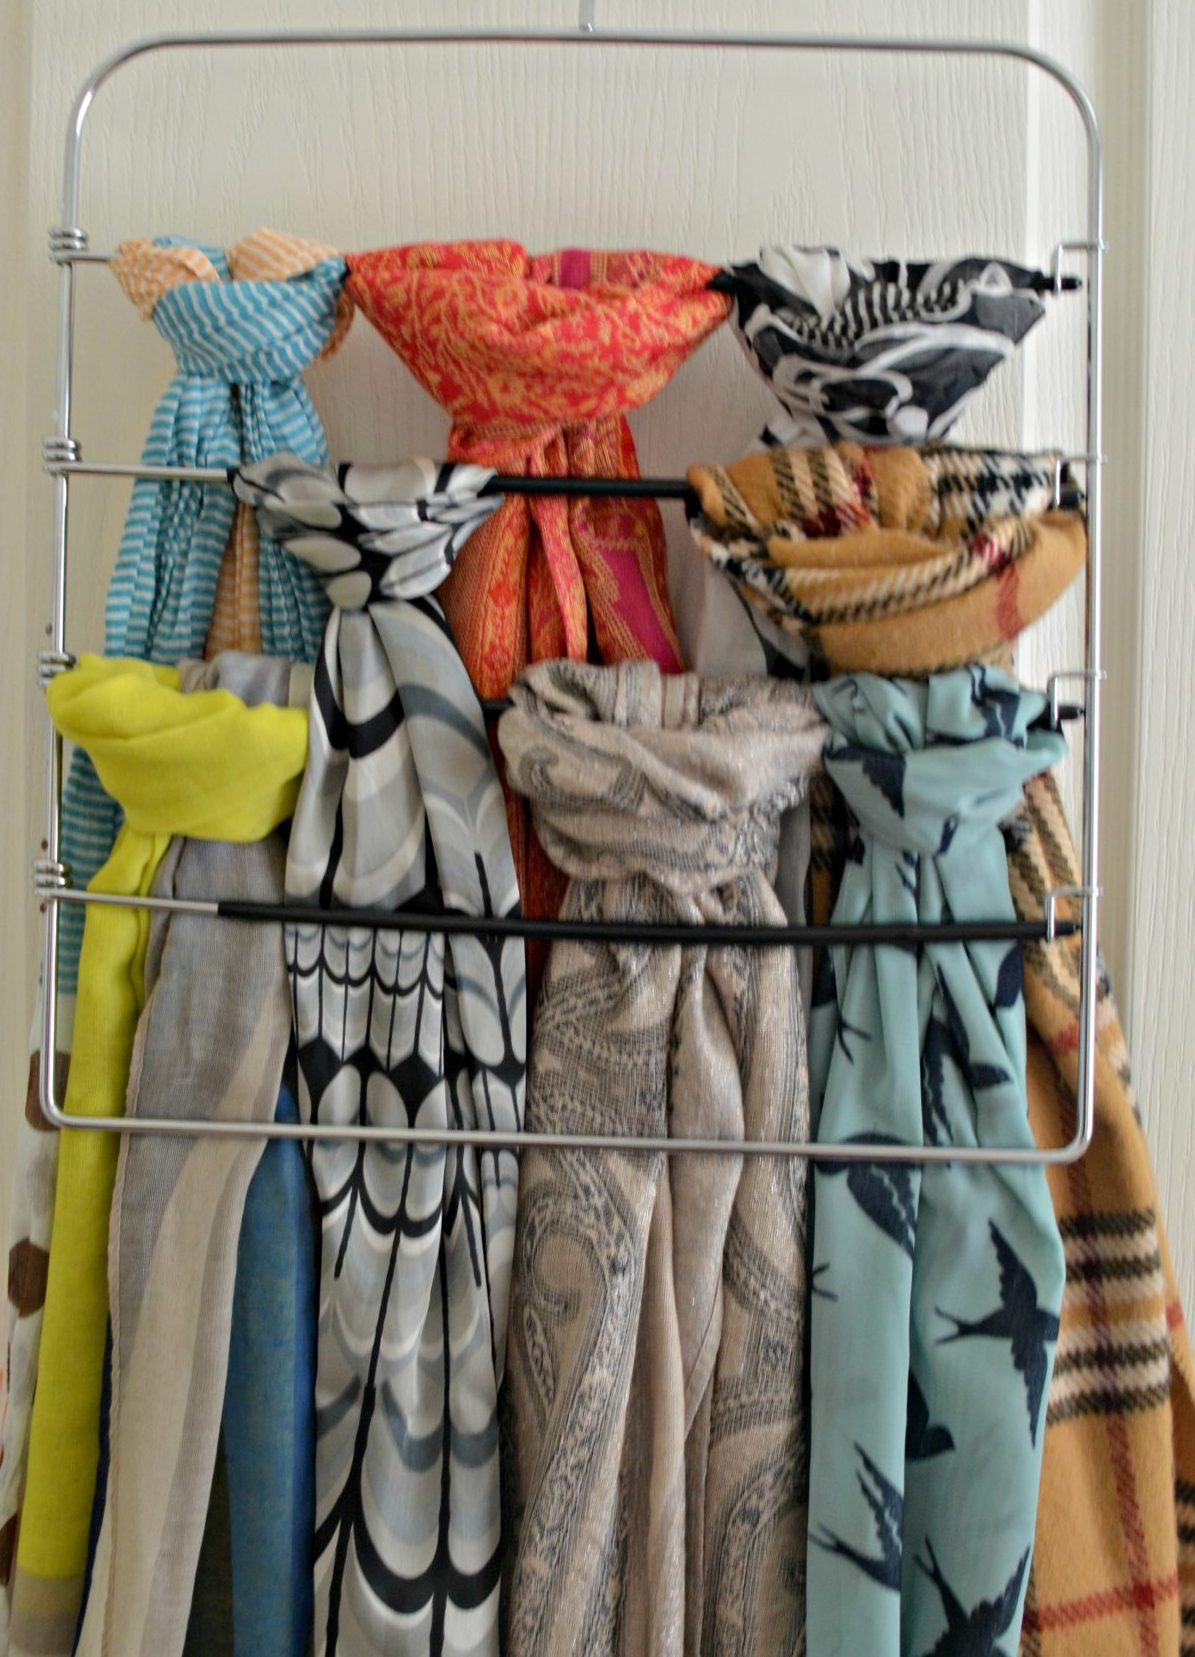 Use a pant hanger to organize scarves Hip2Save